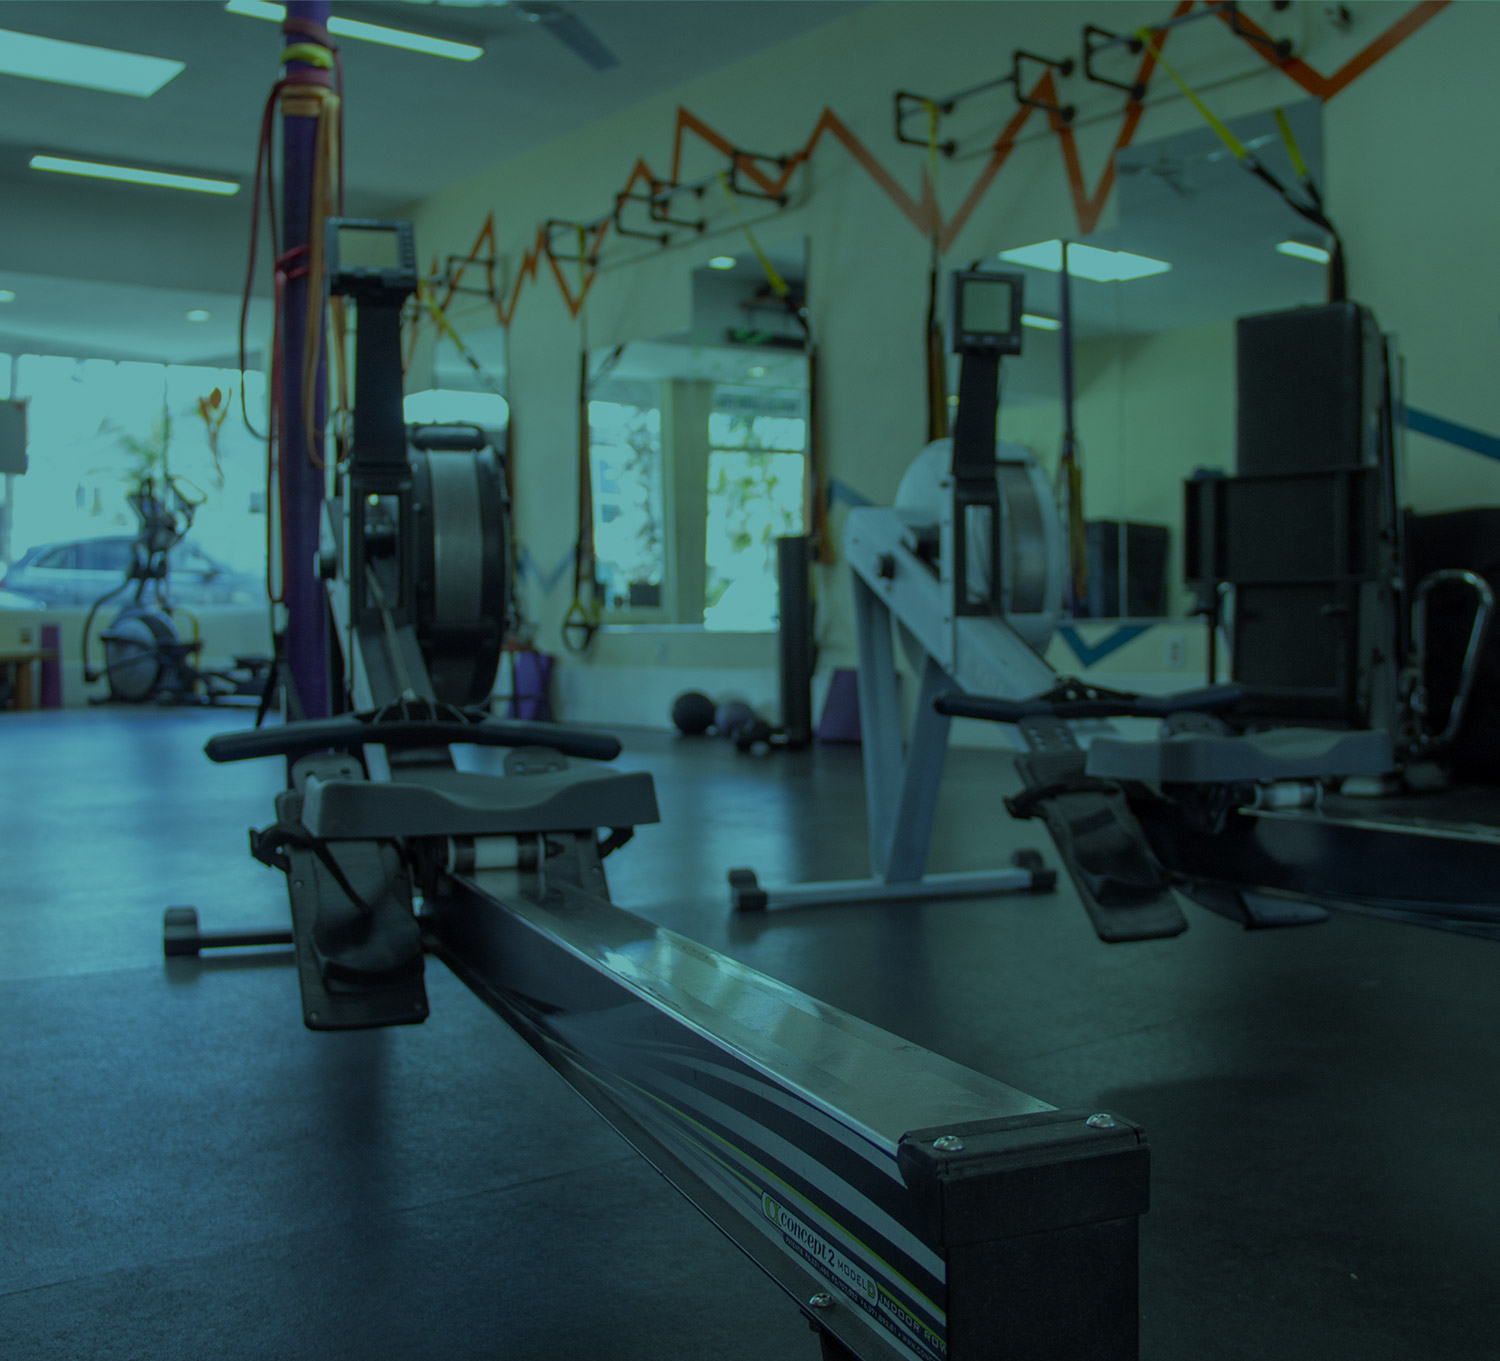 Personal Training Pricing - 30 min PT session = $4545 min PT session = $6060 min PT session = $75